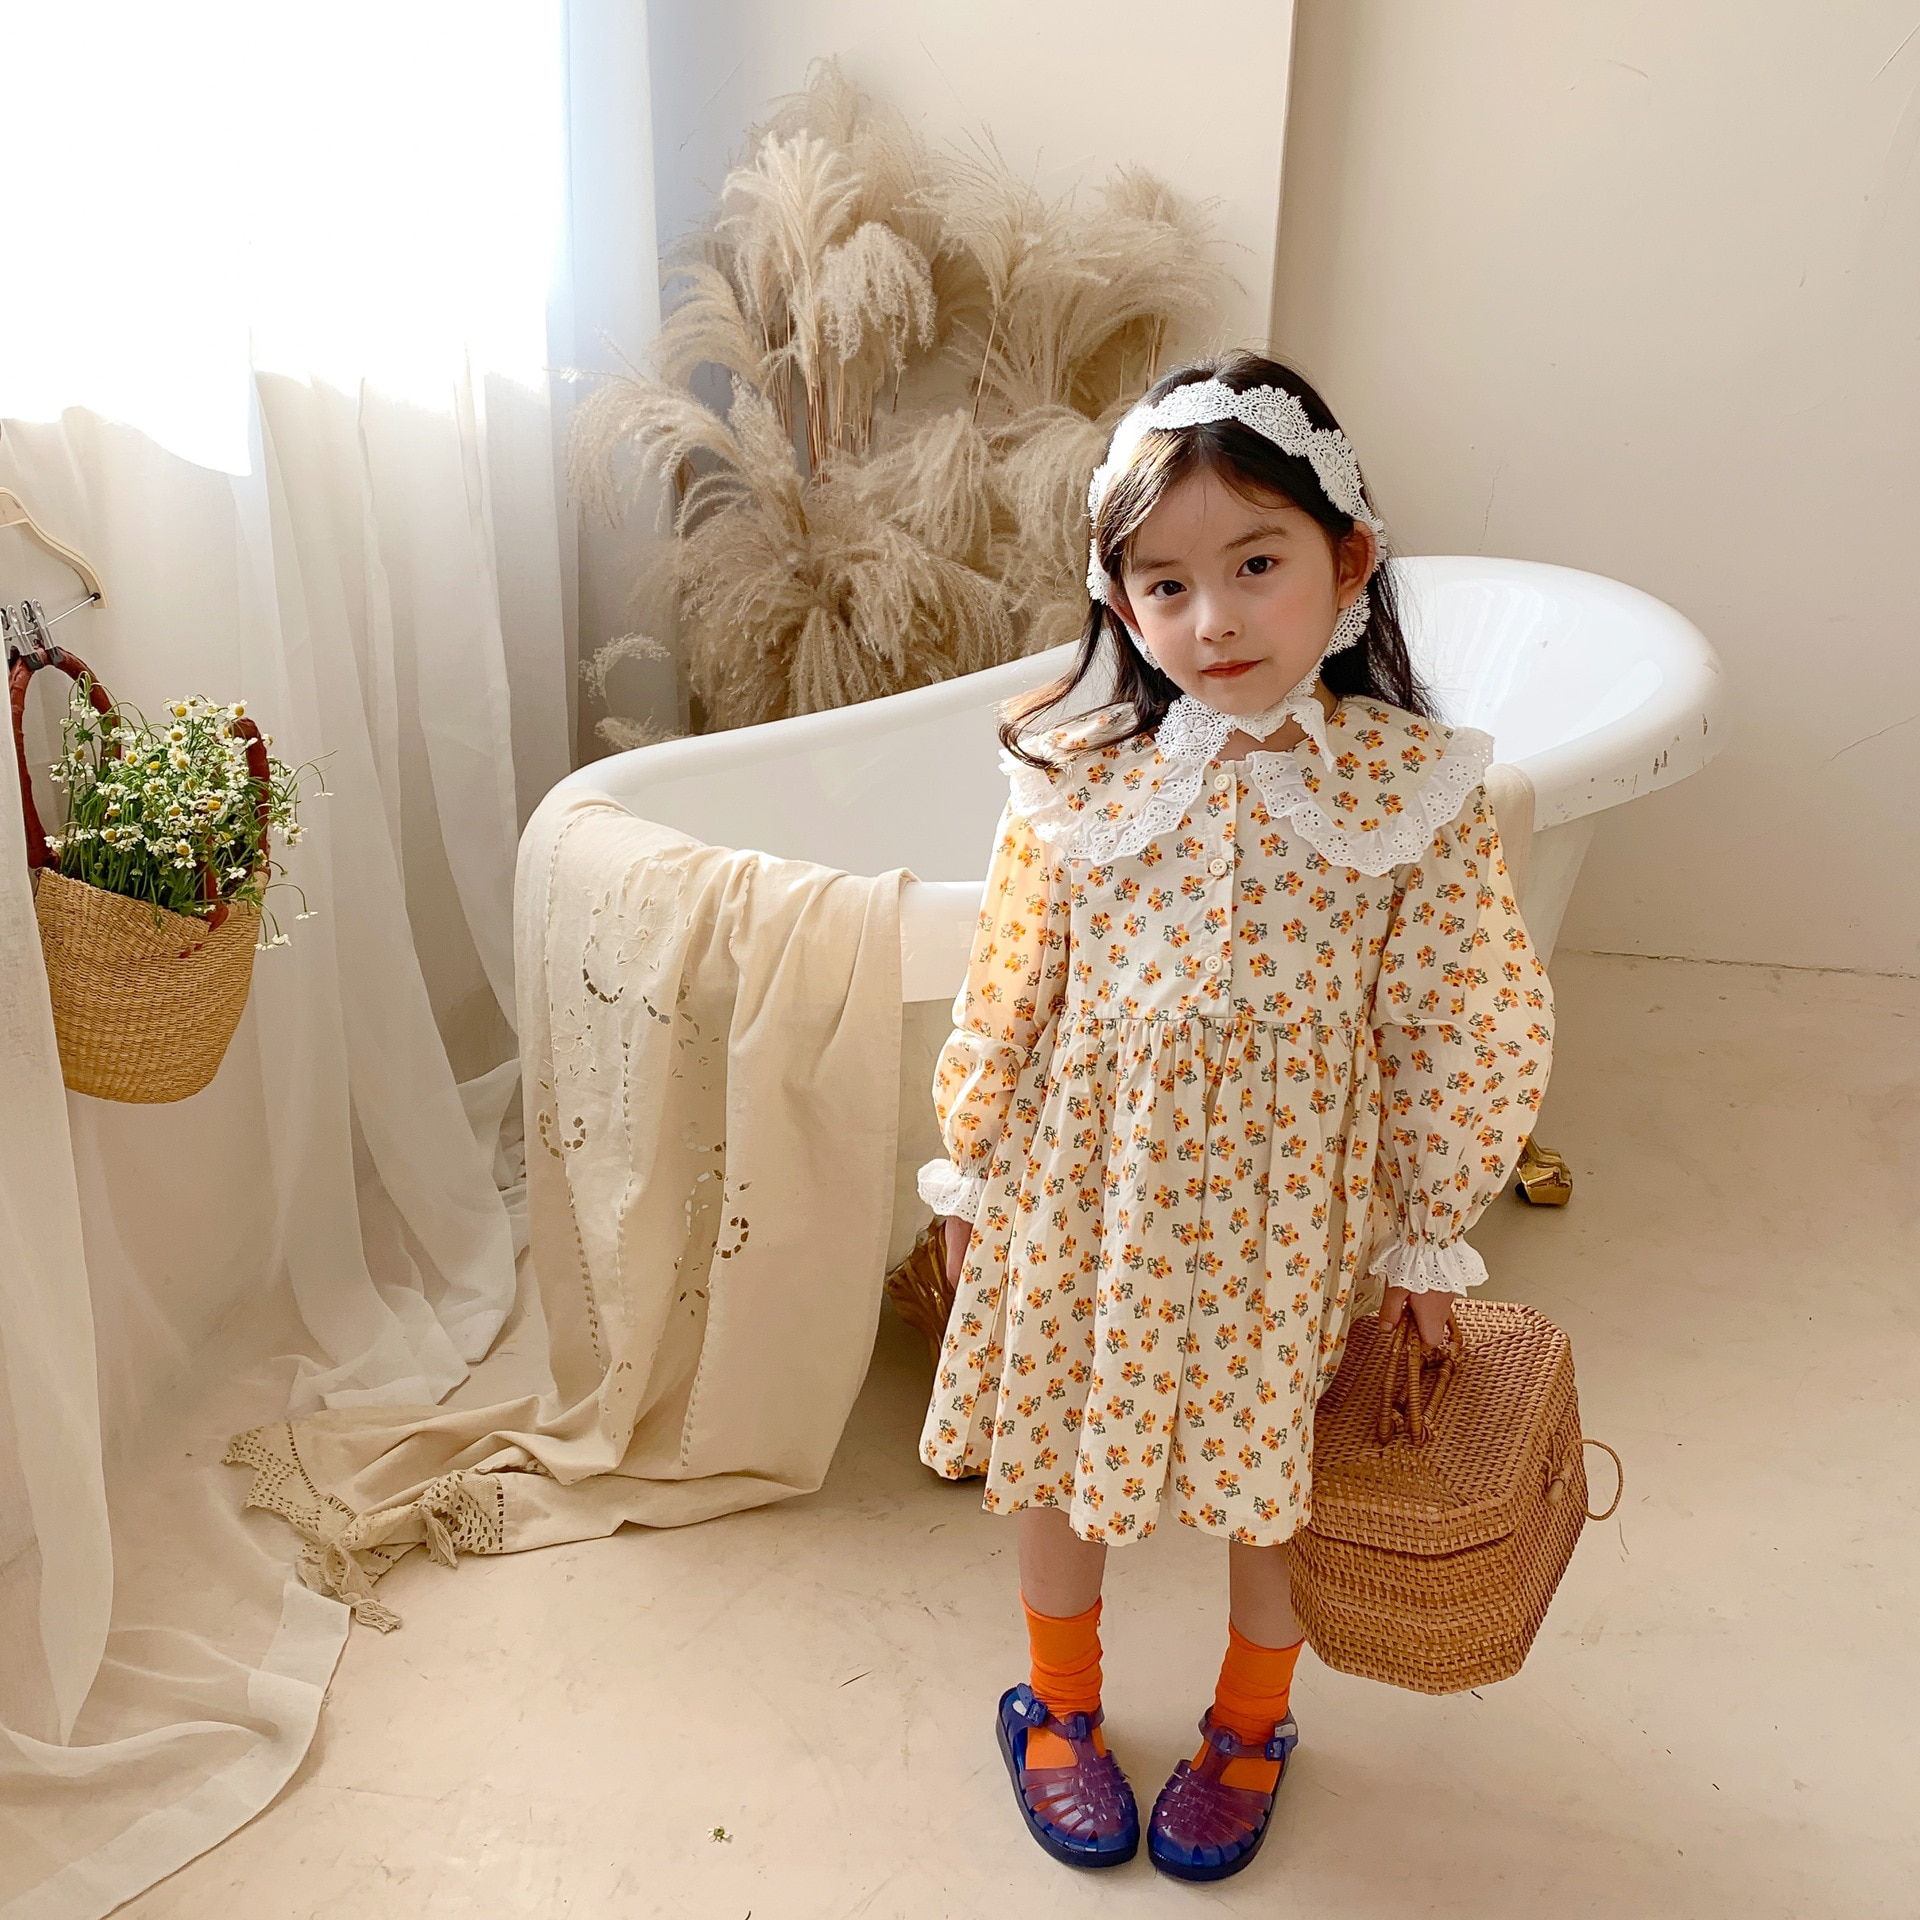 Childrens Clothing 2021 Spring Summer New Arrivals Girls Dress Sweet Floral Doll Collar Princess Lace Skirt